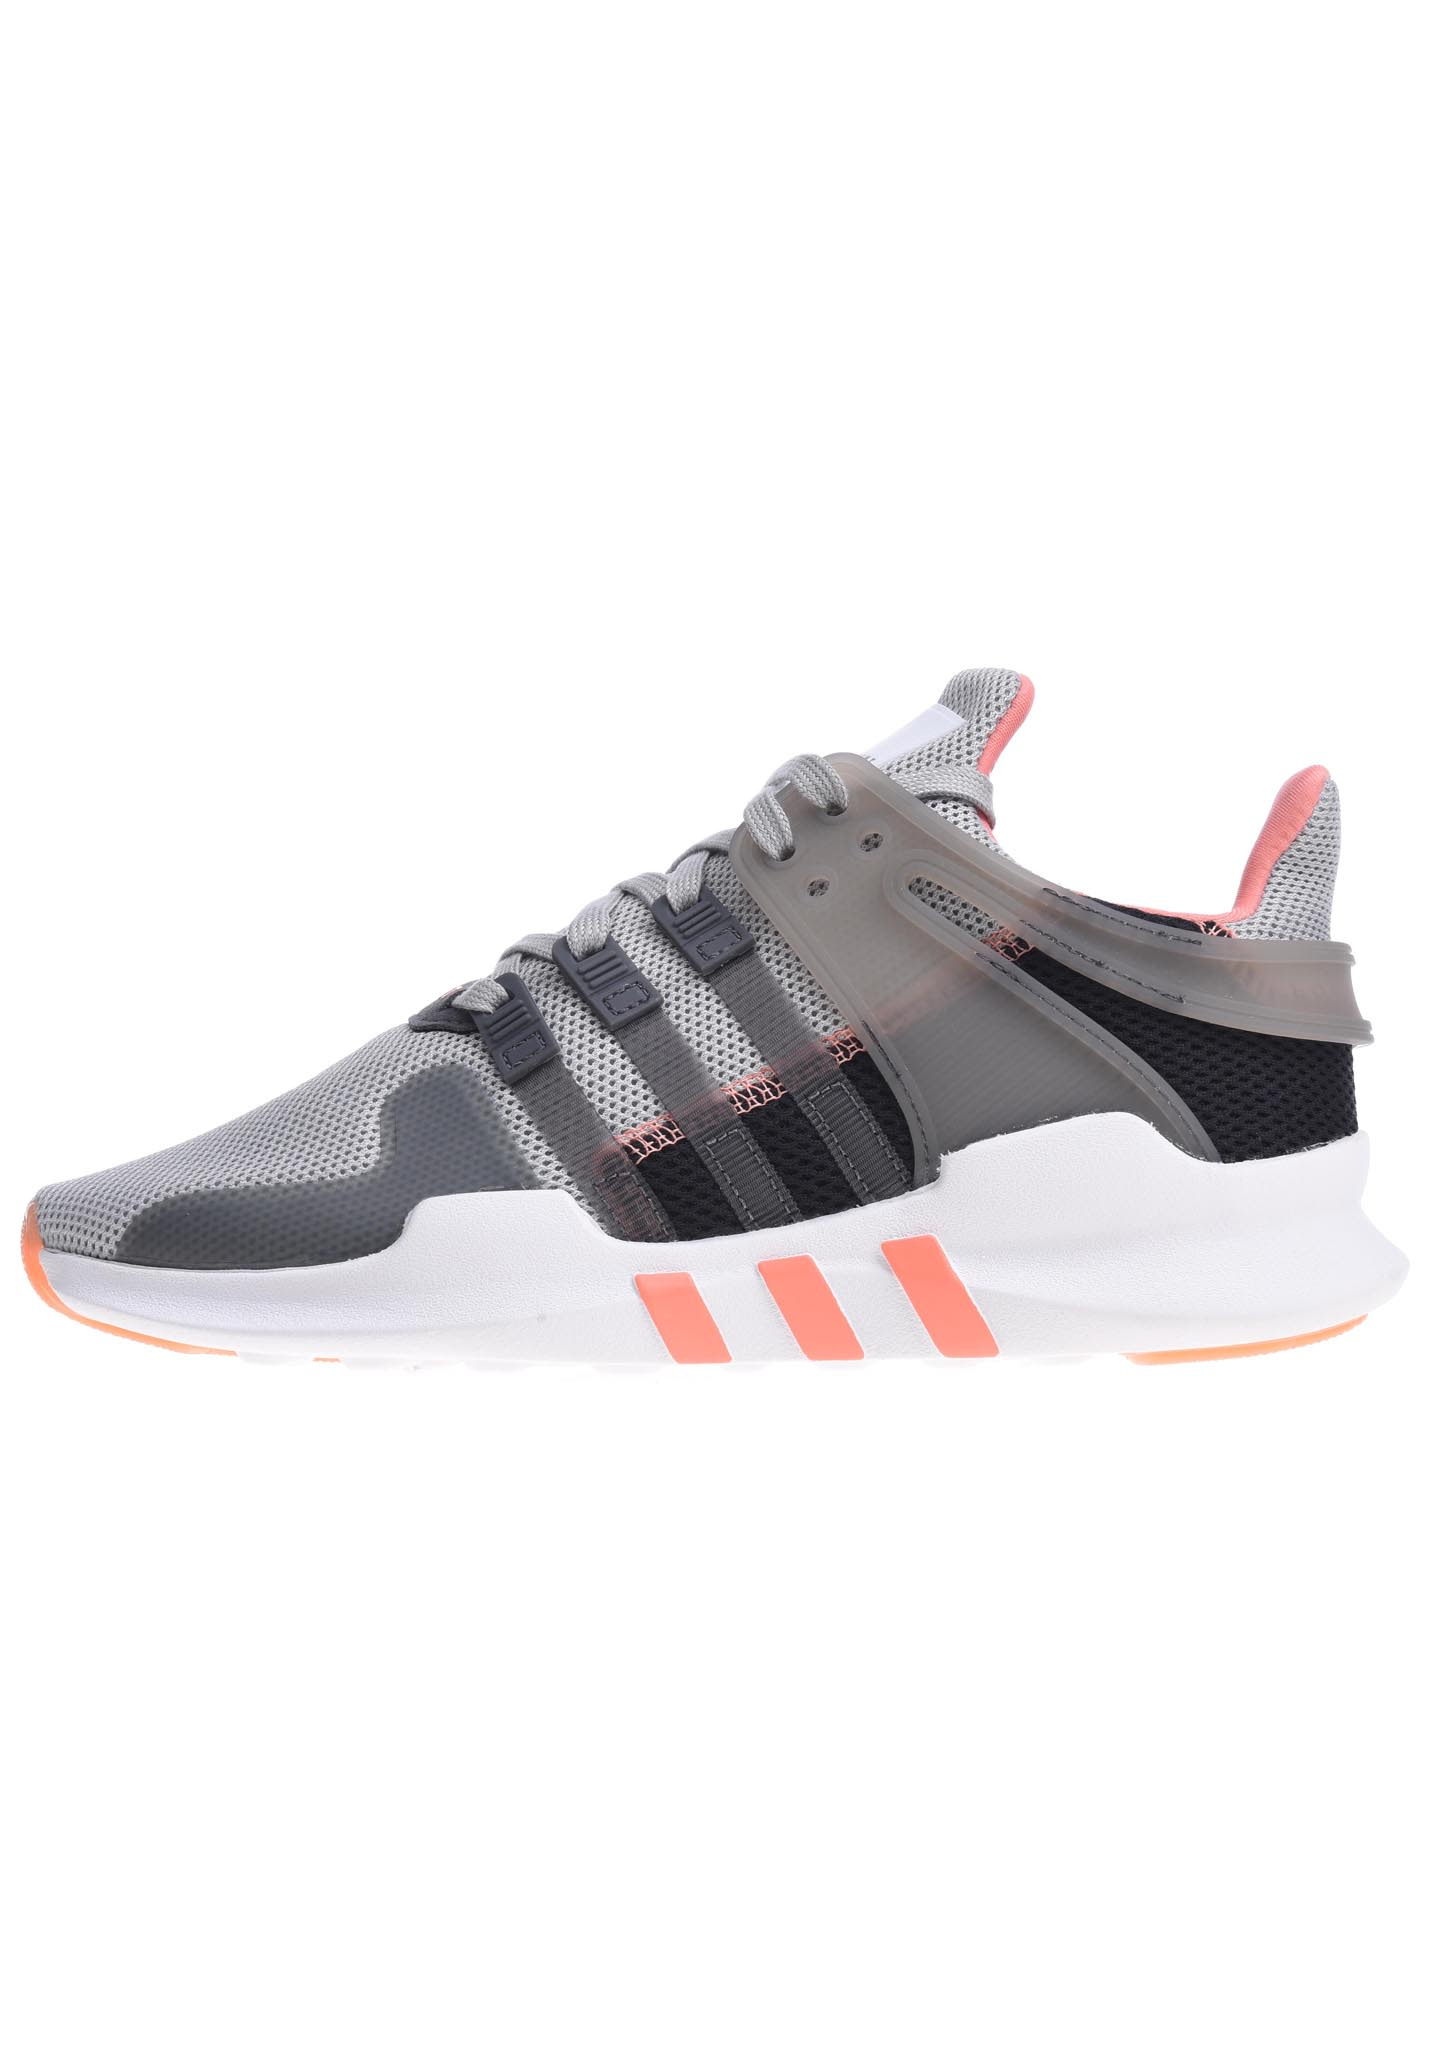 info for f774b 2b82c ADIDAS ORIGINALS Eqt Support Adv - Sneakers for Women - Grey - Planet Sports